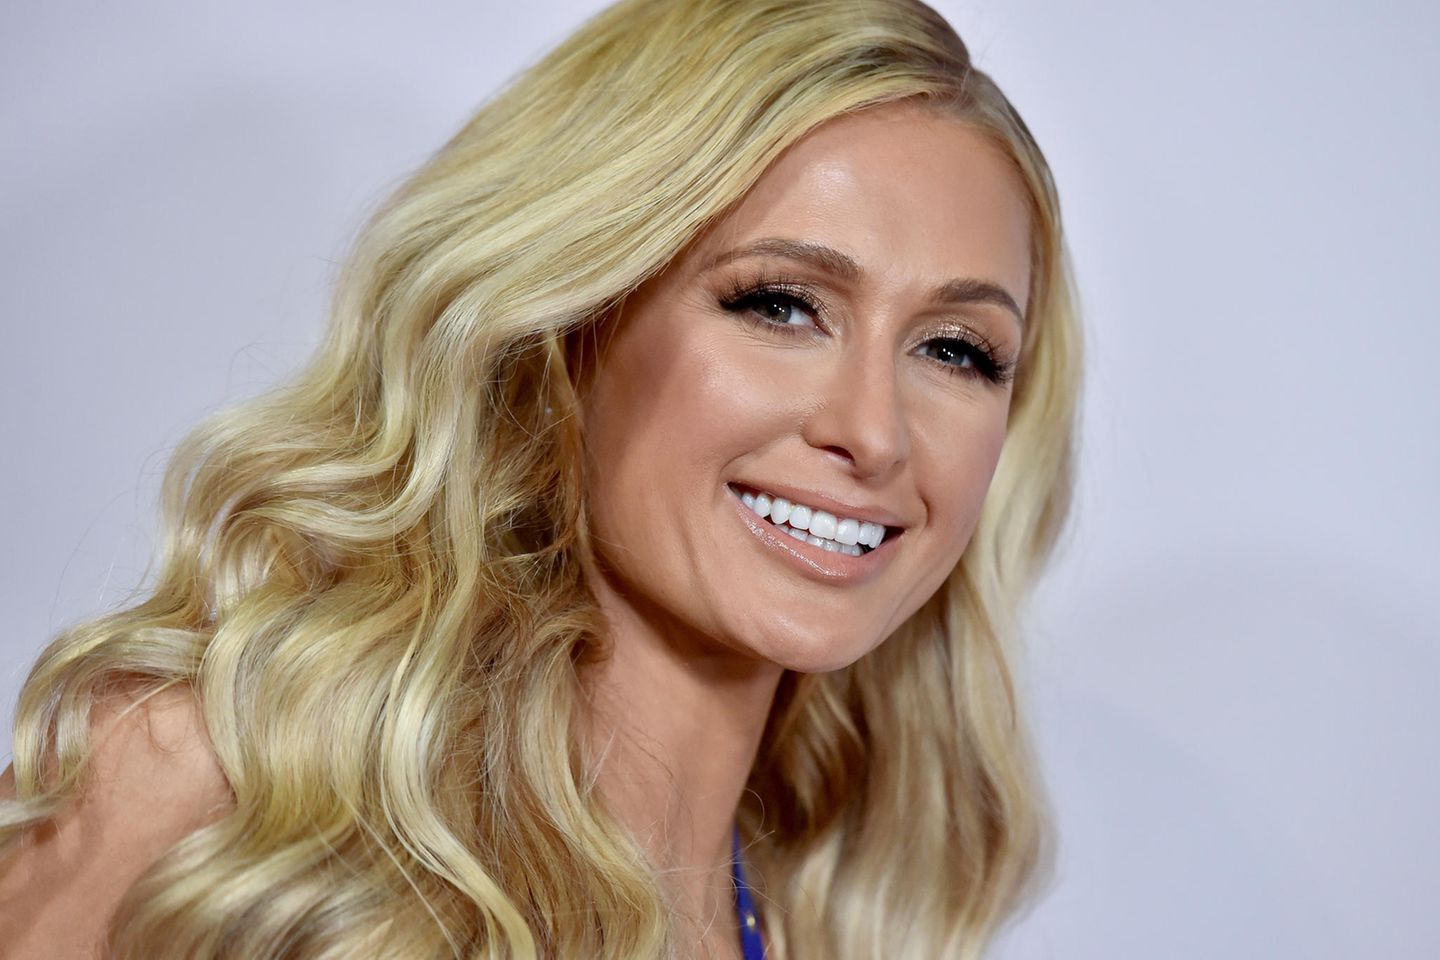 paris-hilton-addresses-those-pregnancy-reports-is-she-going-to-be-a-mom-soon